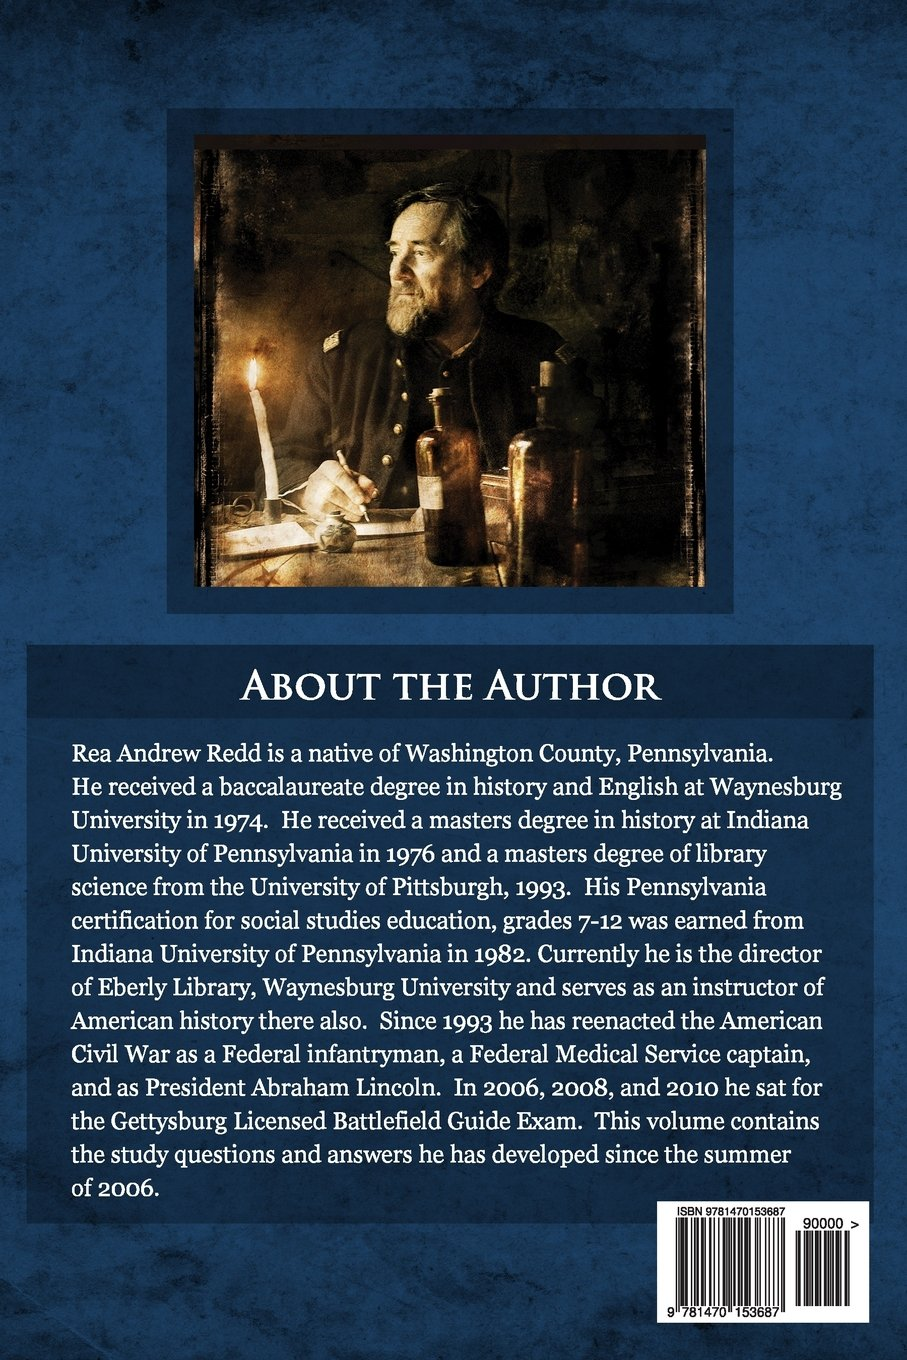 Gettysburg Campaign Study Guide, Volume One: 700+ Questions and Answers For  Students of Battle: Rea Andrew Redd: 9781470153687: Amazon.com: Books